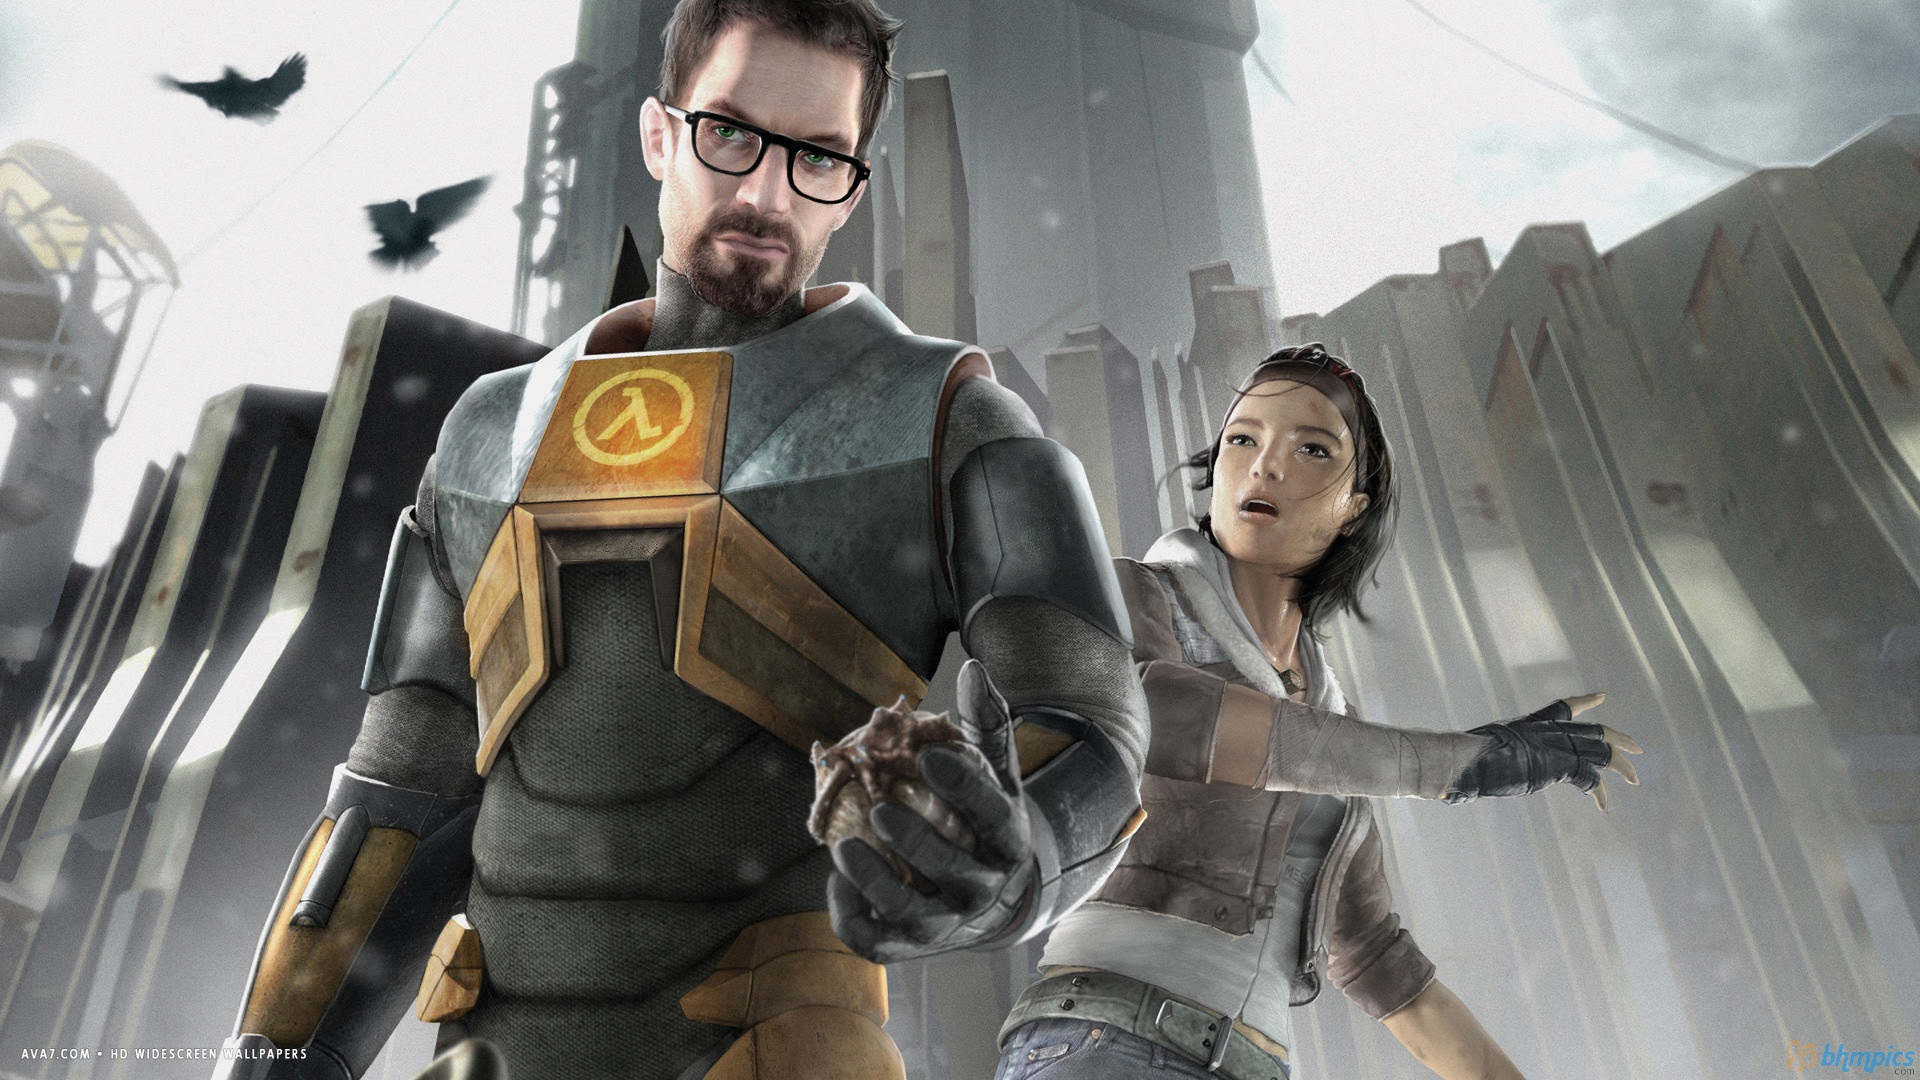 Half Life 2 Game Hd Widescreen Wallpaper Games Backgrounds